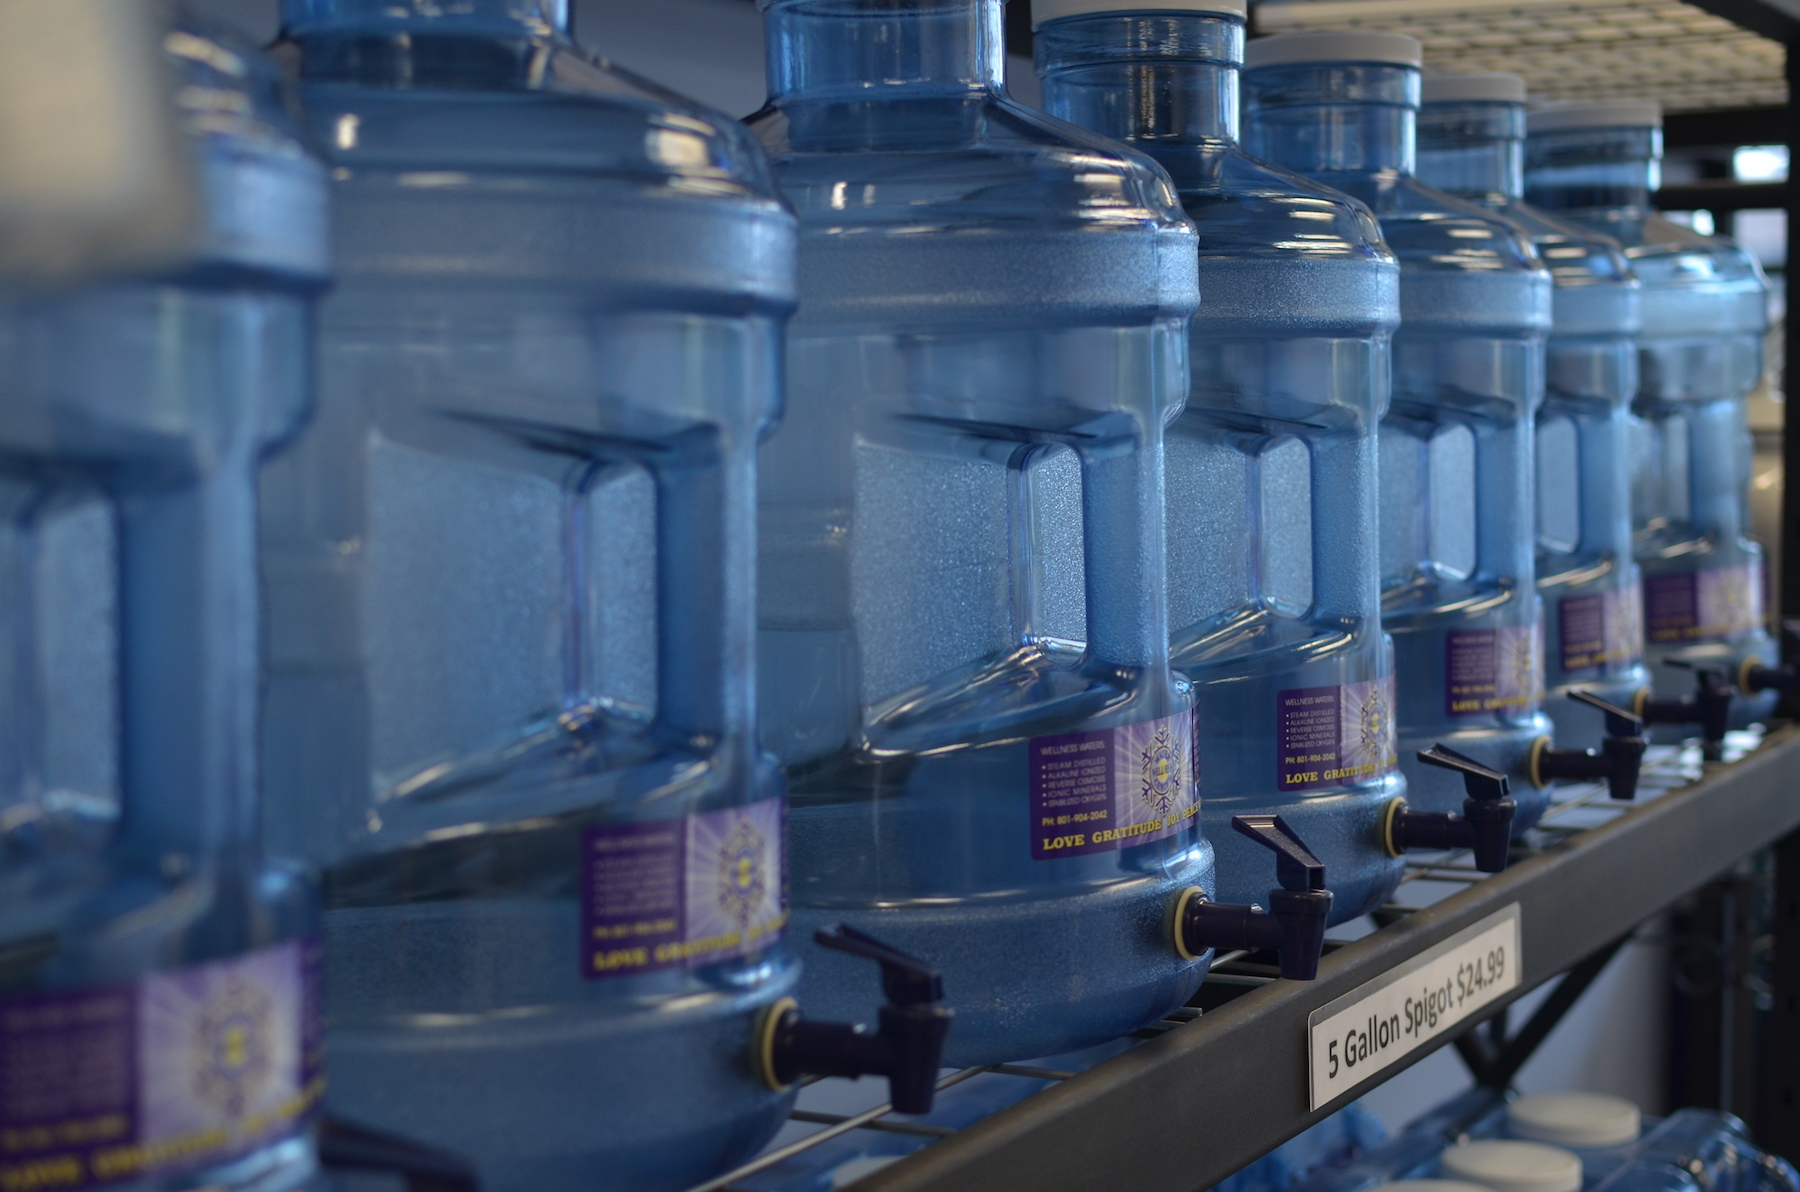 Copy of Water&wellness empty bottles for purchase